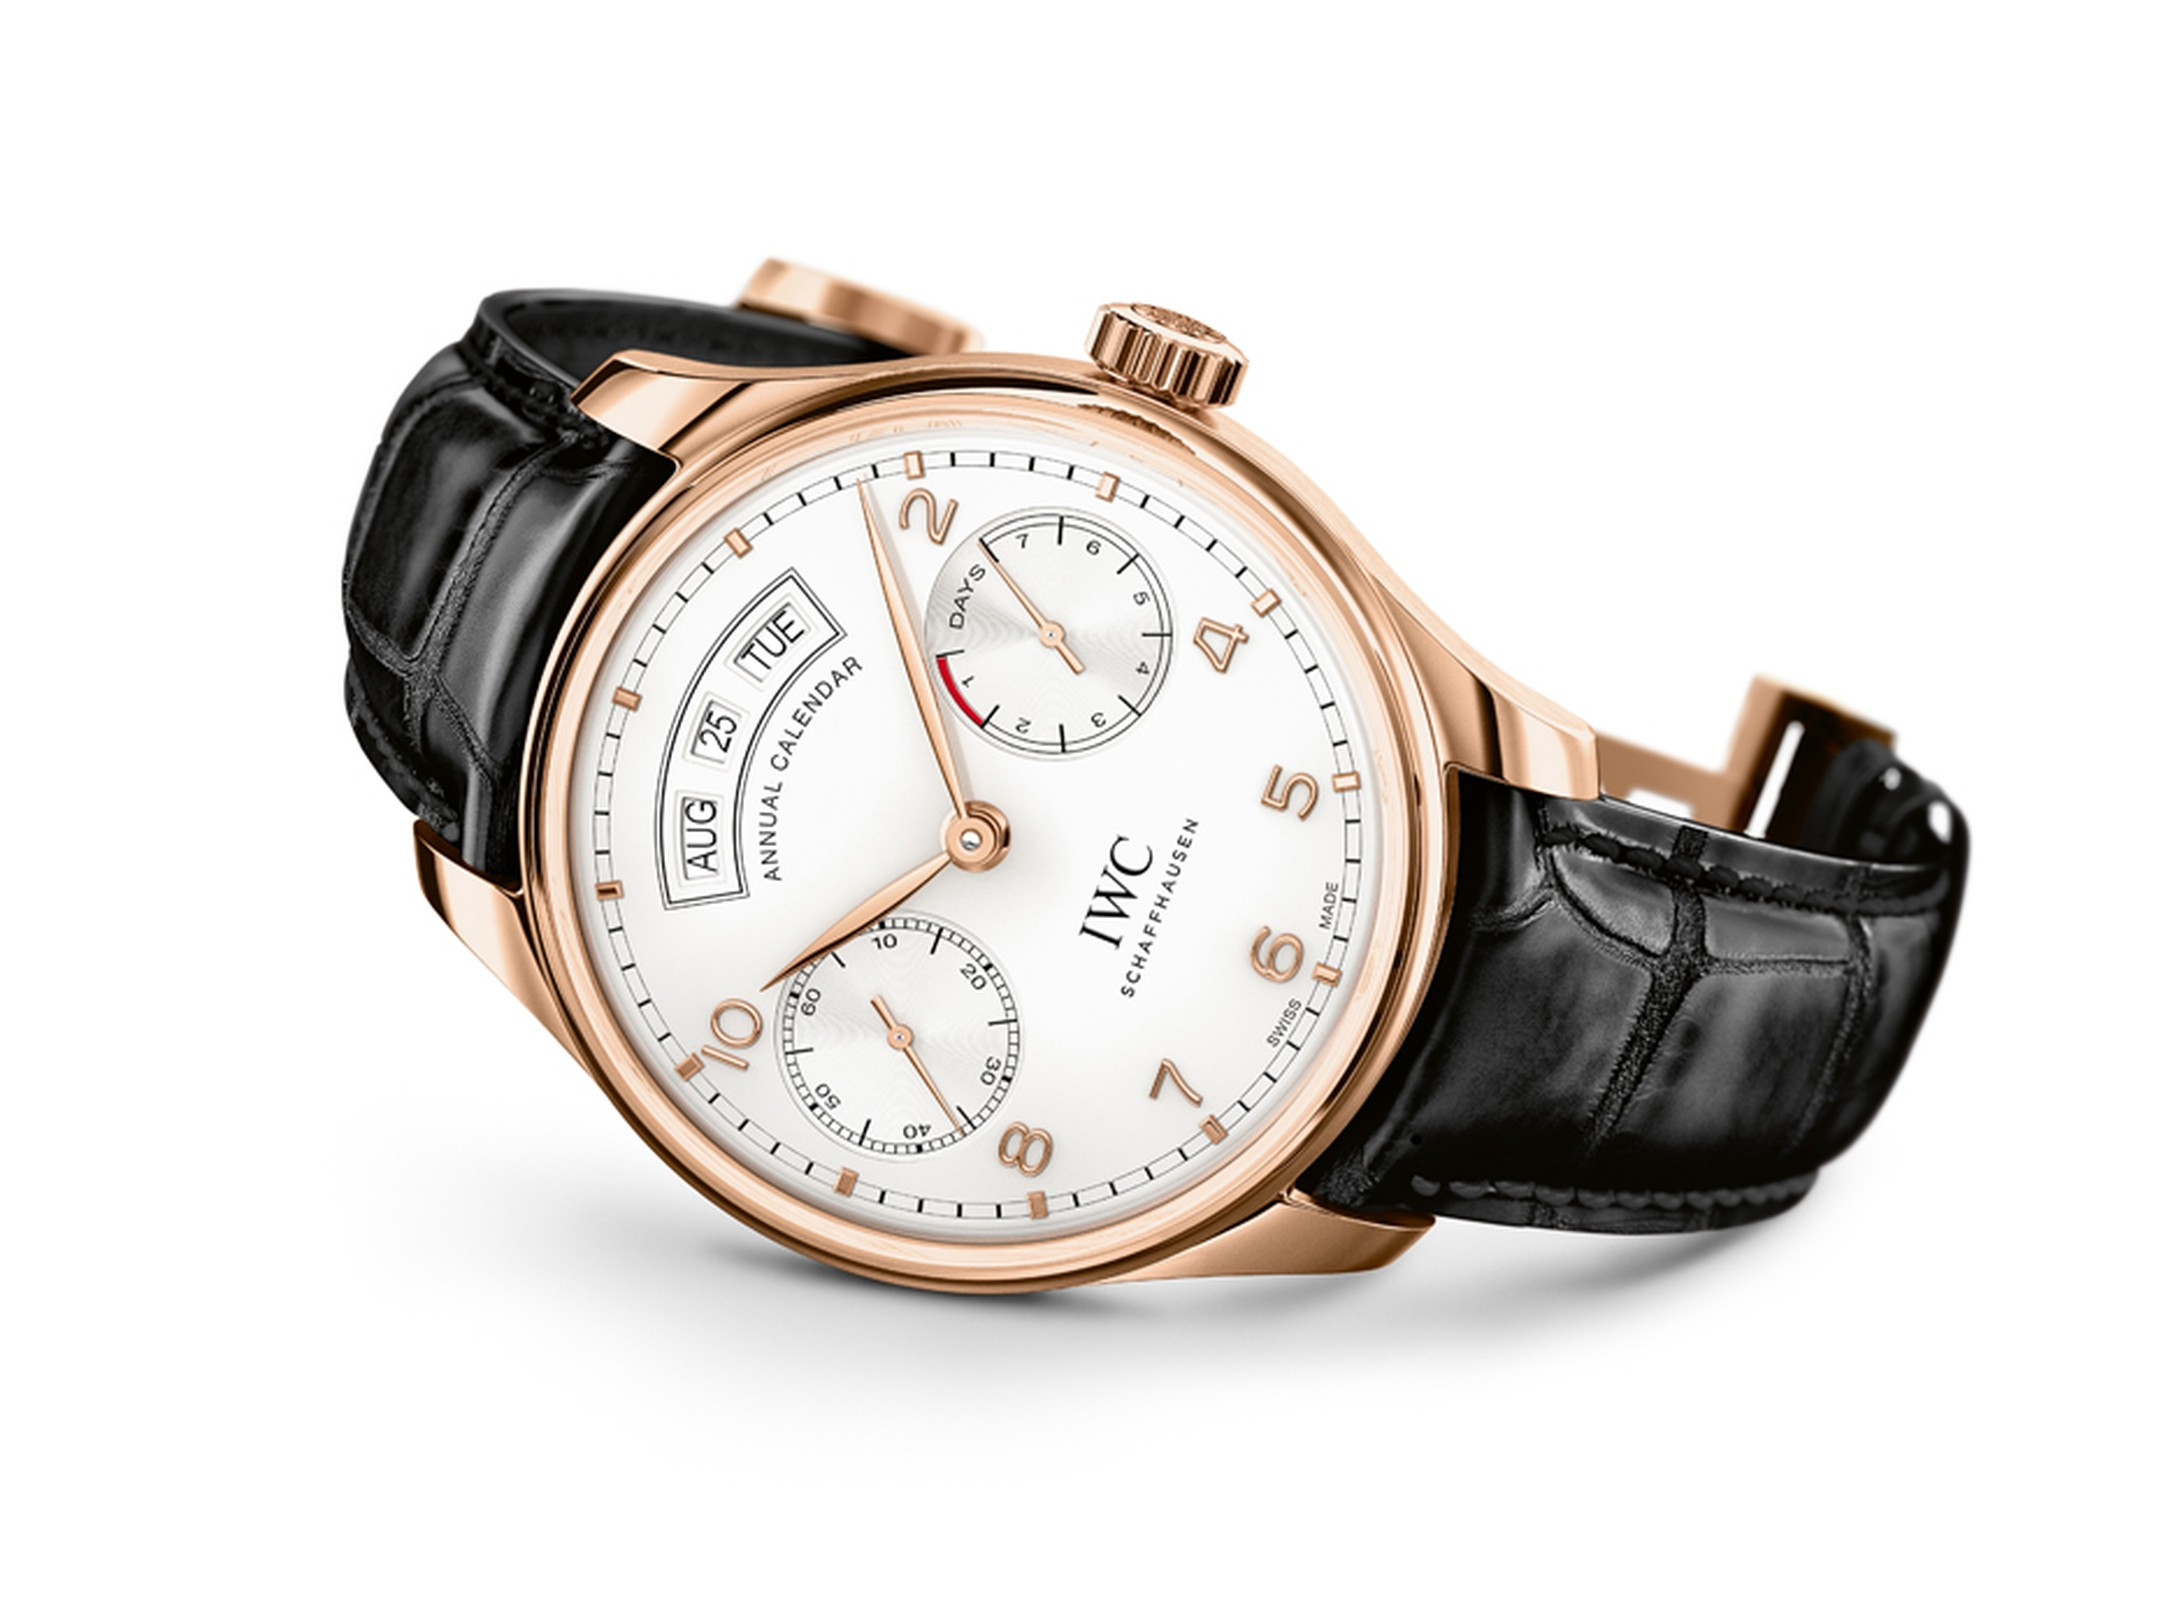 Three apertures at 12 o'clock on the dial indicate the month, the date and the day of the week. Unlike perpetual calendars, annual calendars need to be corrected once a year at the end of February, and the new Portugieser Annual Calendar allows this to be